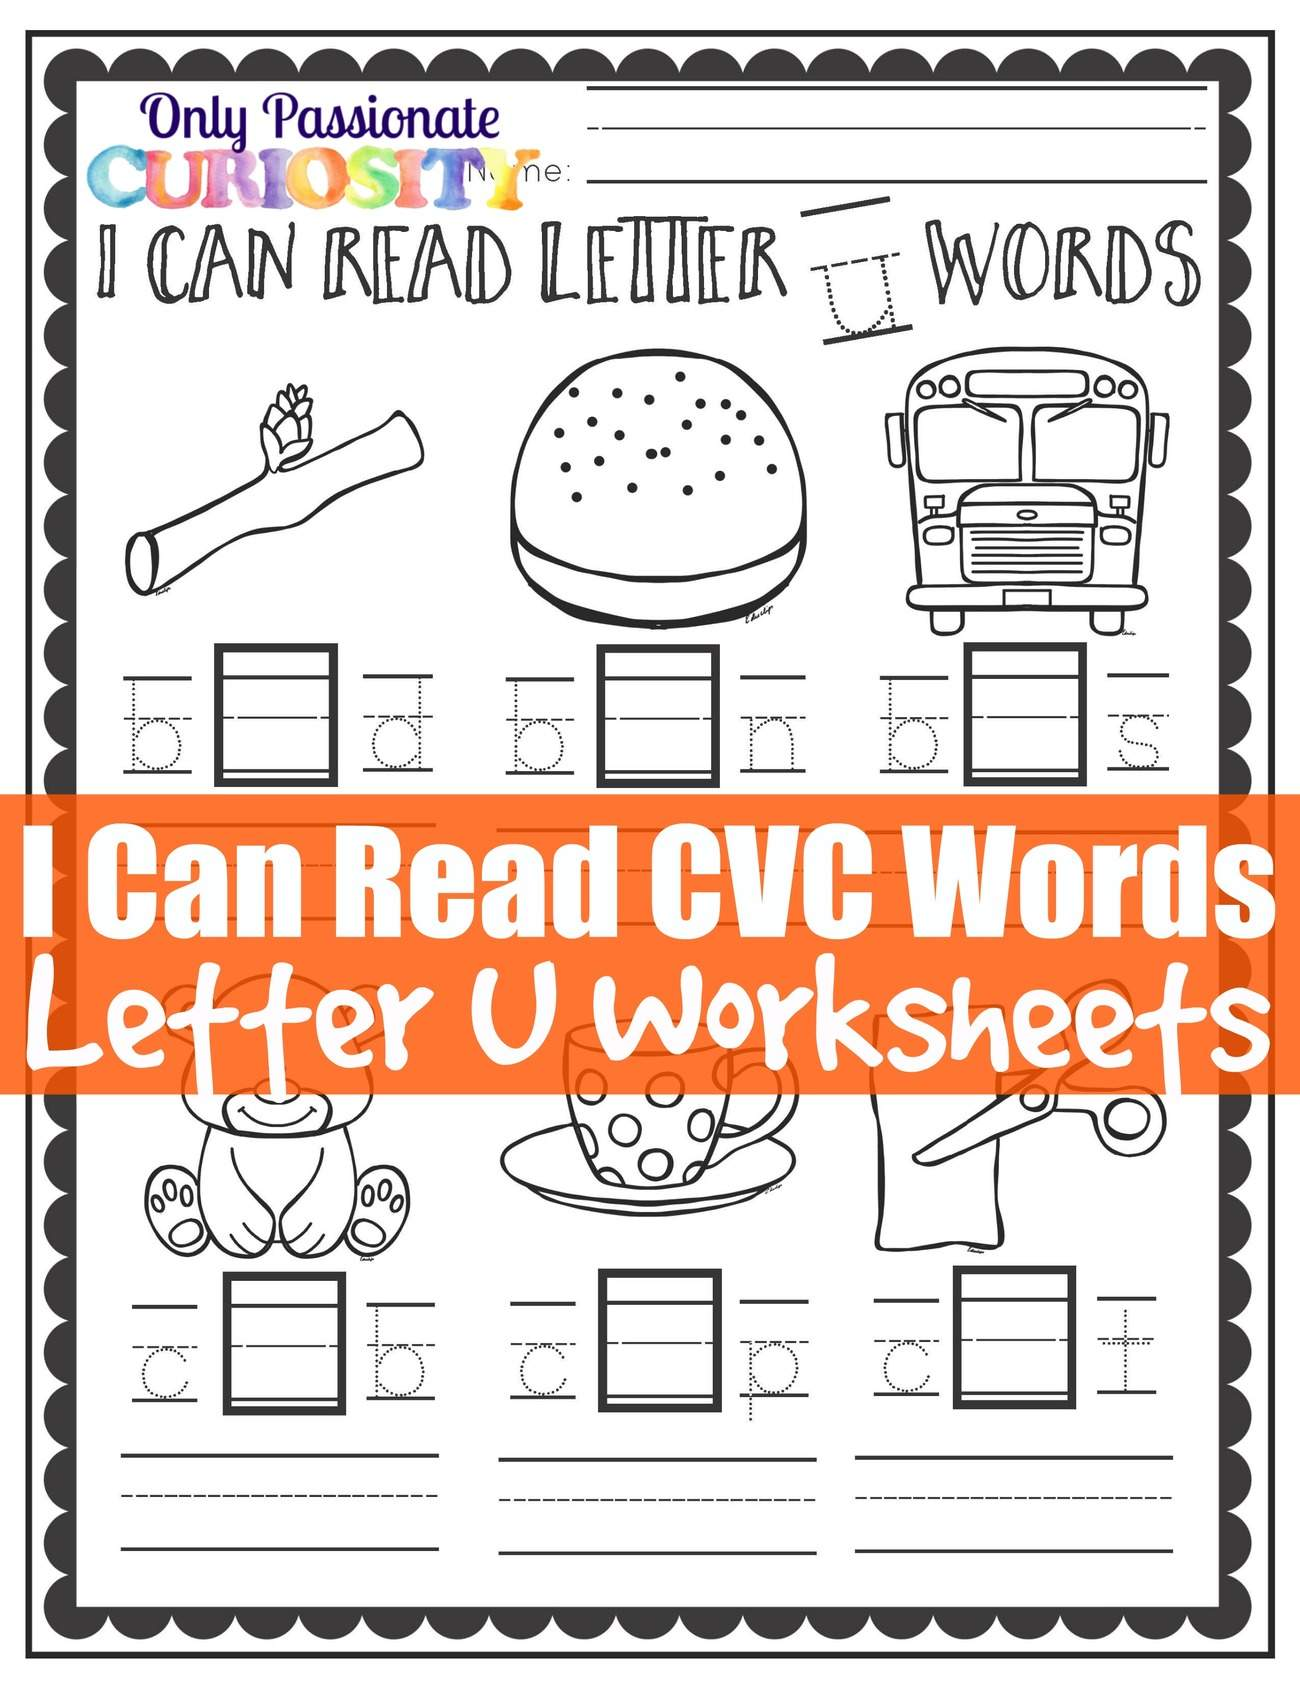 worksheet Cvc Word Worksheets i can read cvc words middle u worksheets only passionate curiosity